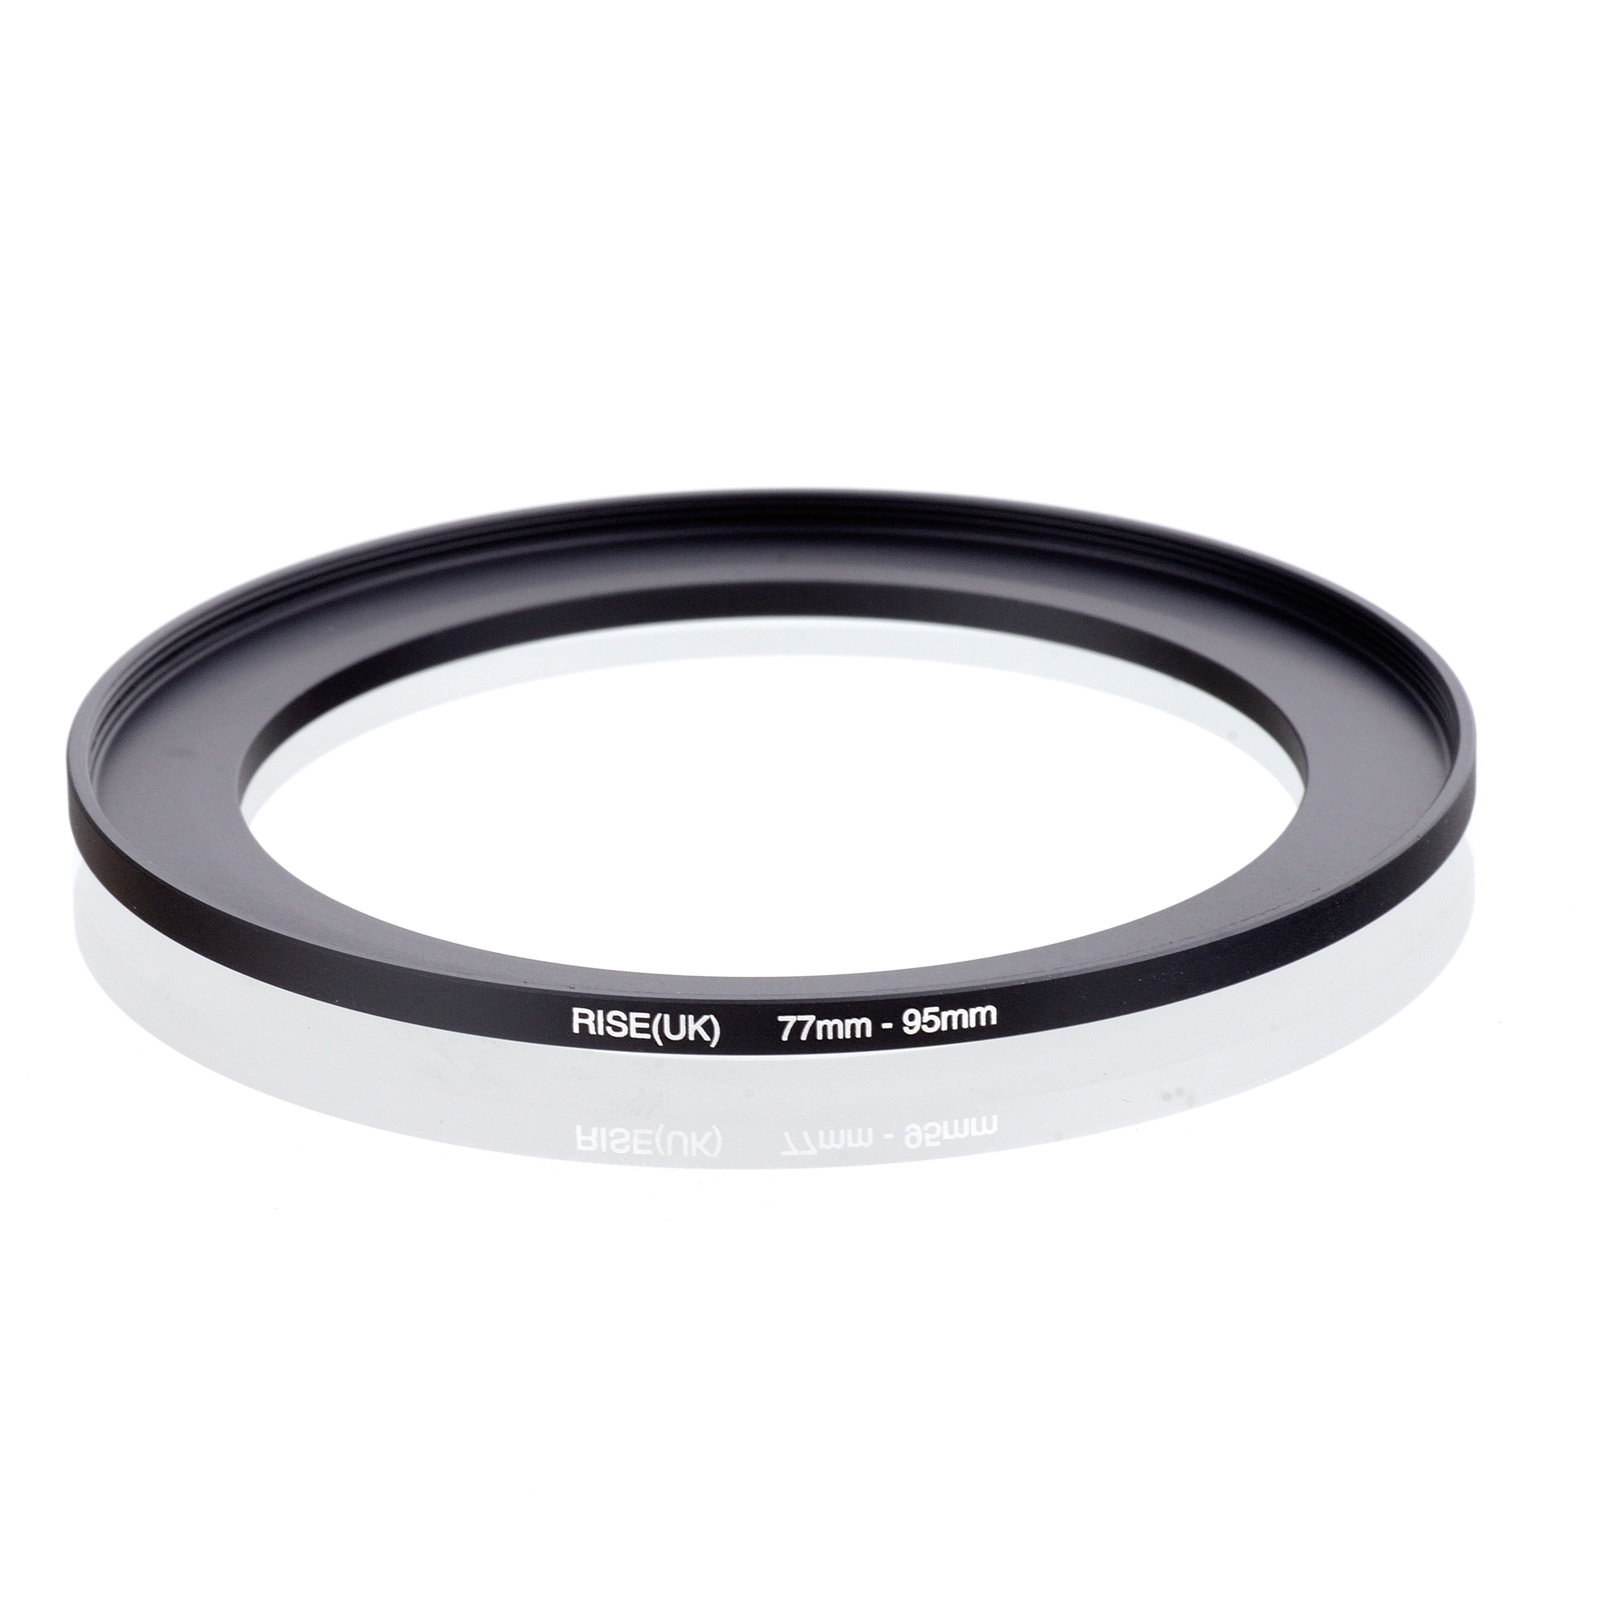 58mm to 77mm Male-Female Stepping Step Up Filter Ring Adapter 58mm-77mm UK